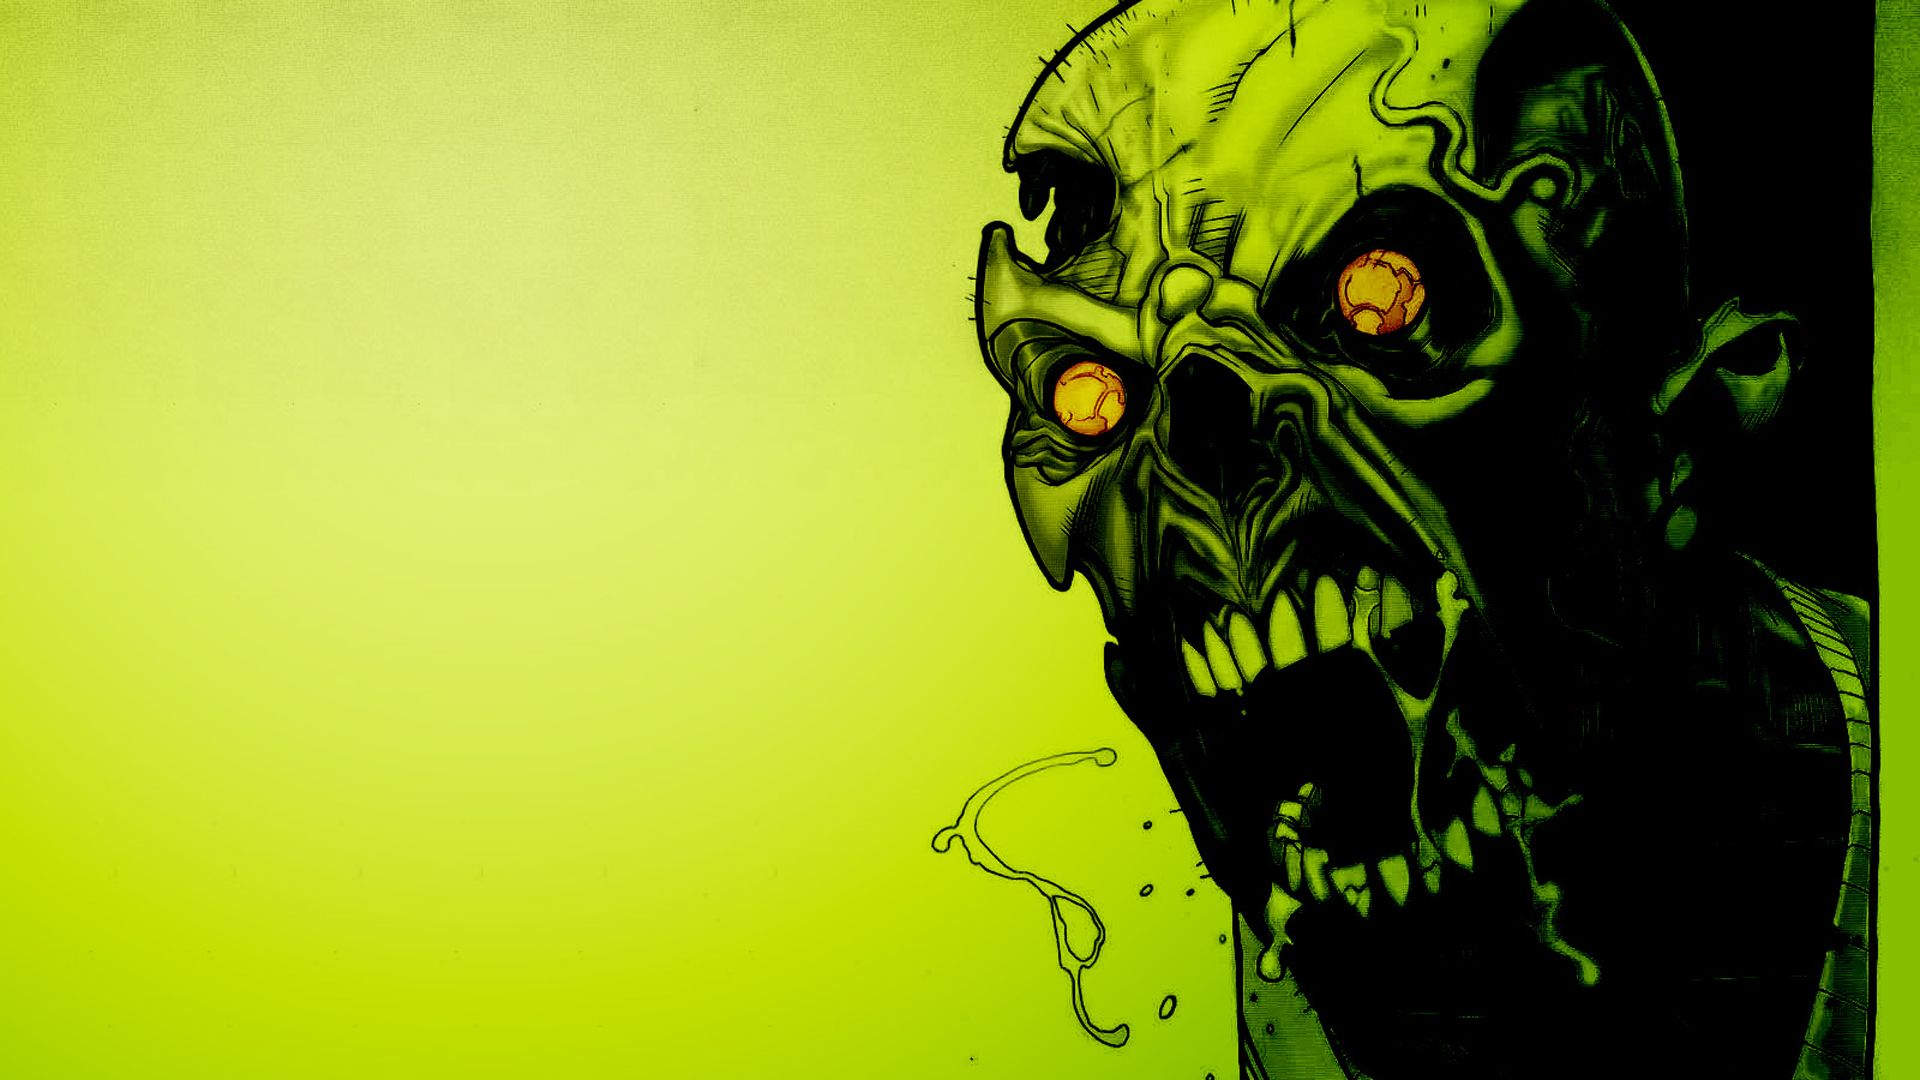 zombie hd wallpapers p 1920a—1080 zombies wallpaper 53 wallpapers adorable wallpapers